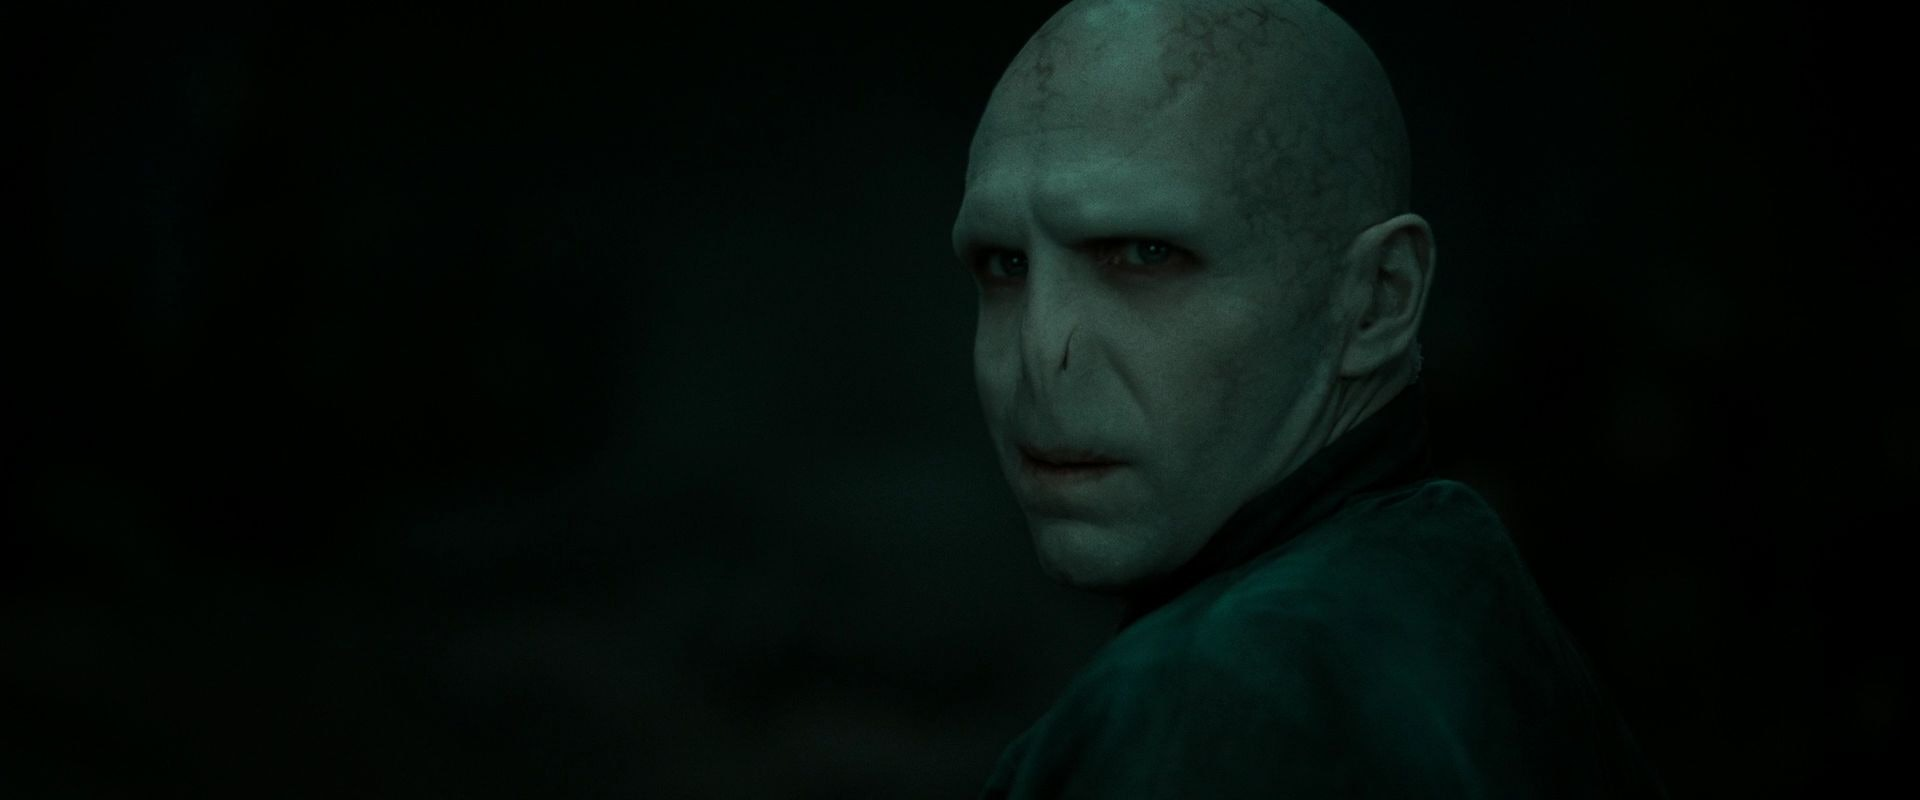 voldemort's mother, merope gaunt, gets the feature treatment in new